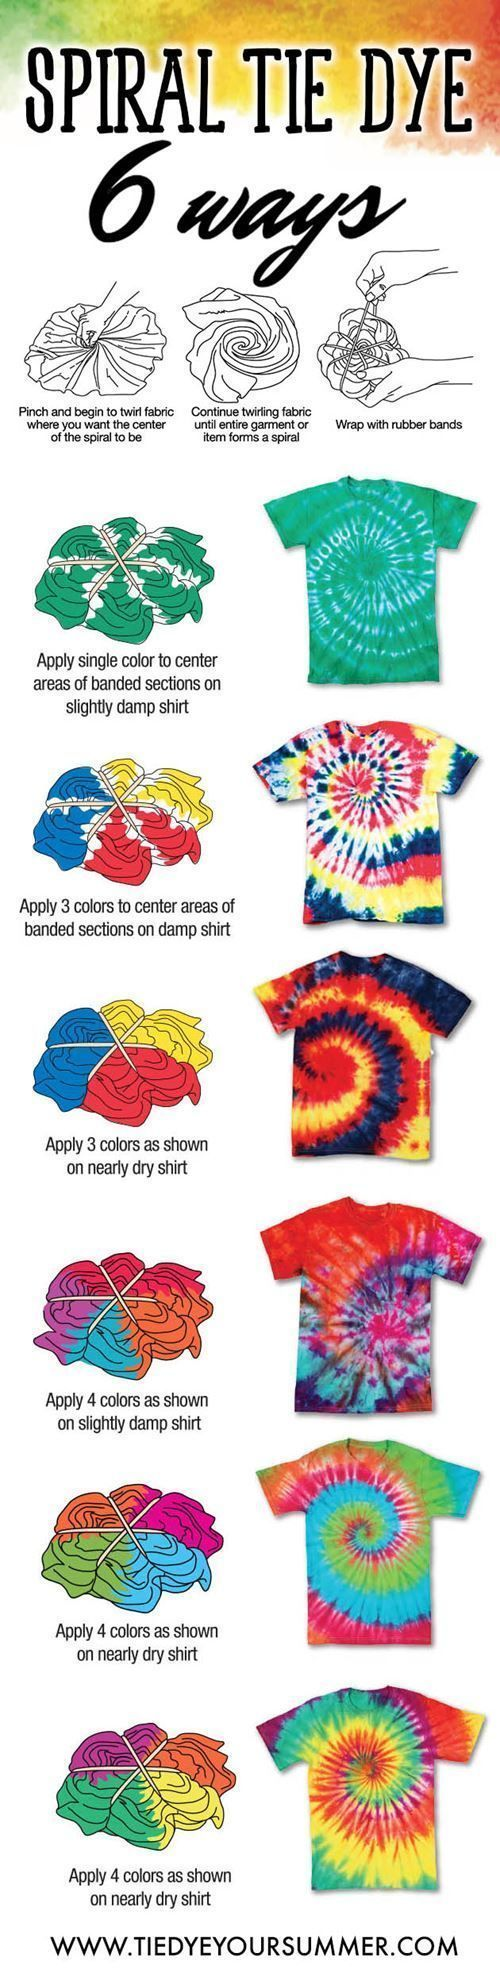 Tie Dye Your Summer With One Of These Cool Spiral Shirt Ideas The Way You Creates A Diffe Pattern Affect Like Shown